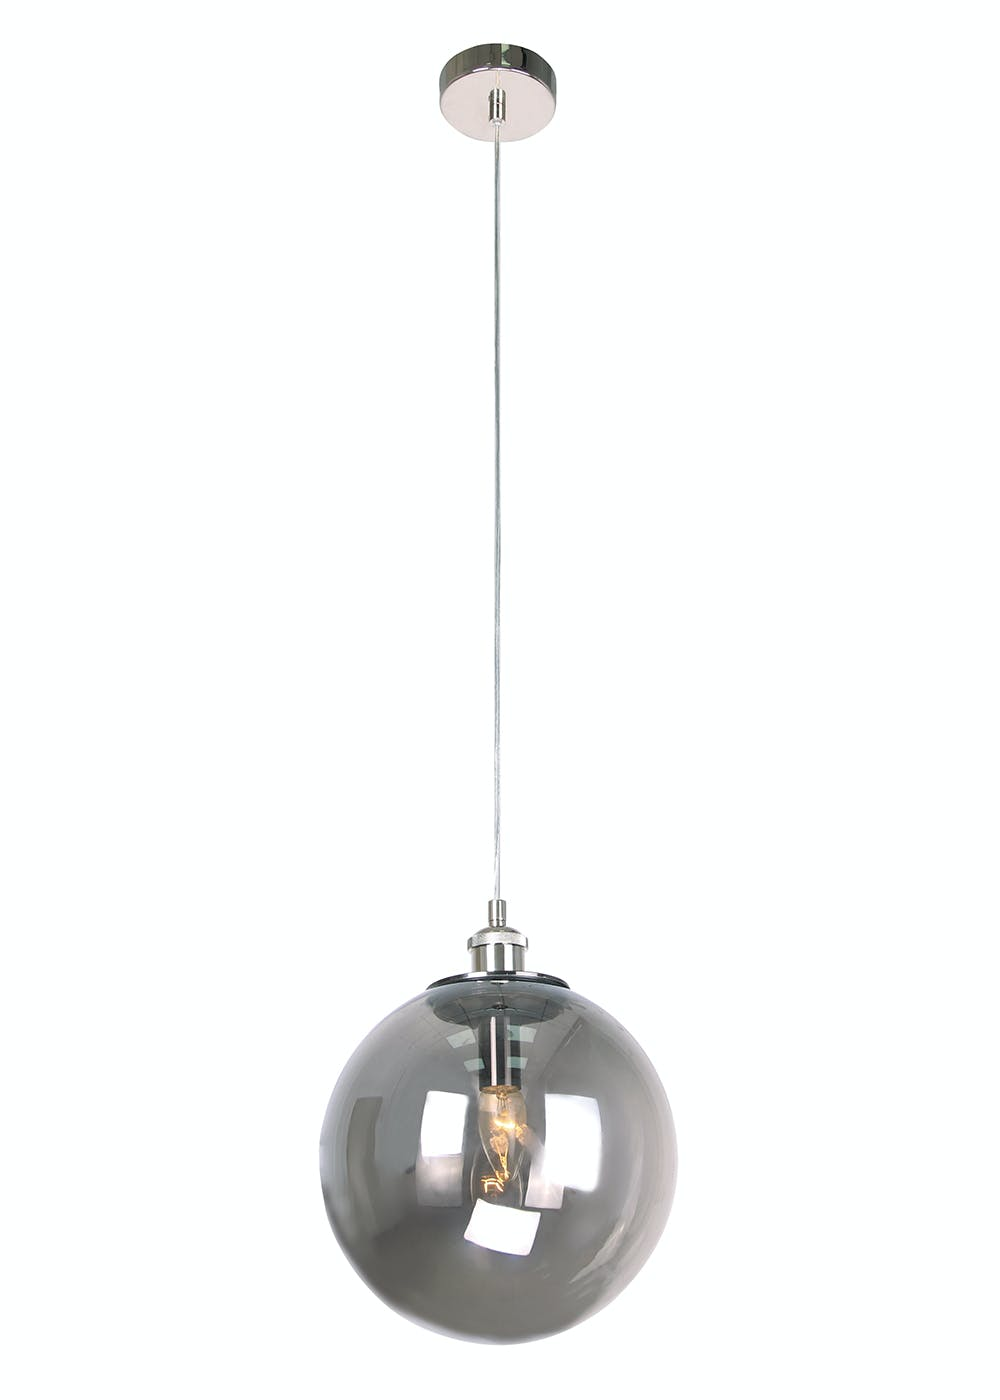 cafe modern heads lindsey glass light cloth chandelier product kitchen in lighting lamp adelman screw shop pendant branching globe bubble for